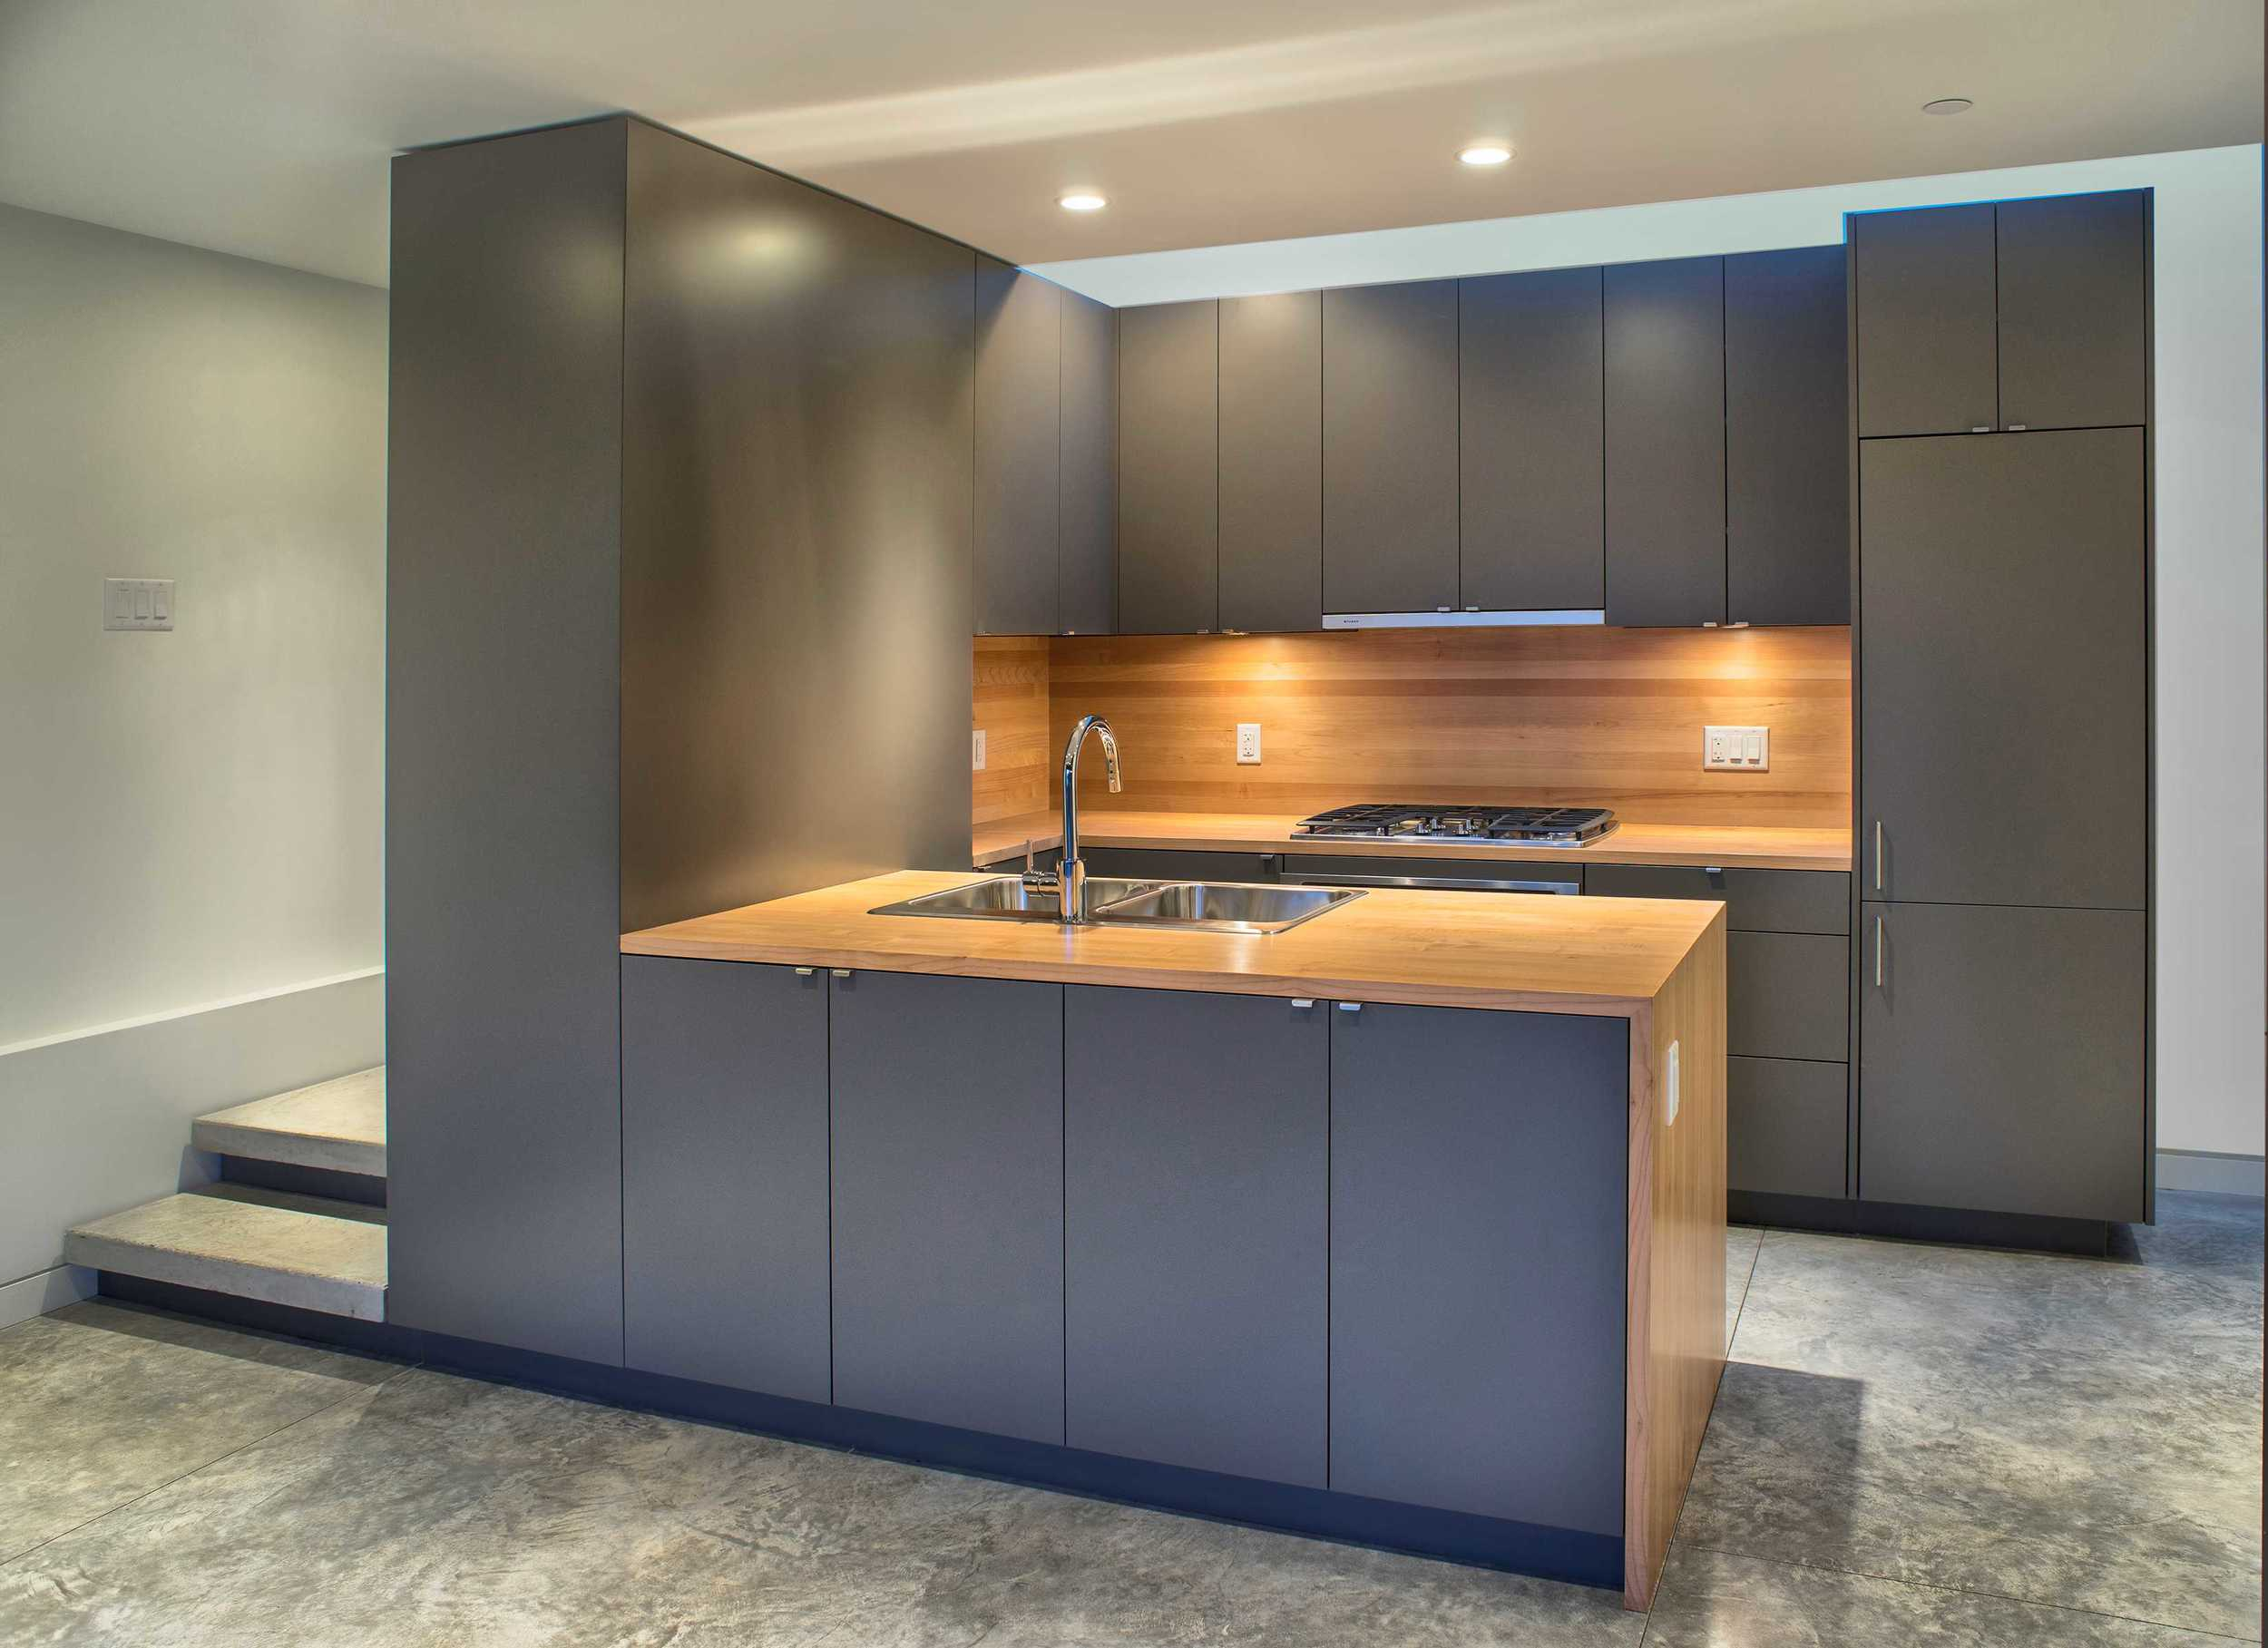 vancouver kitchen design. Tight  efficient kitchen design Reynolds Cabinet Shop Photo Gallery Millwork Cabinetry